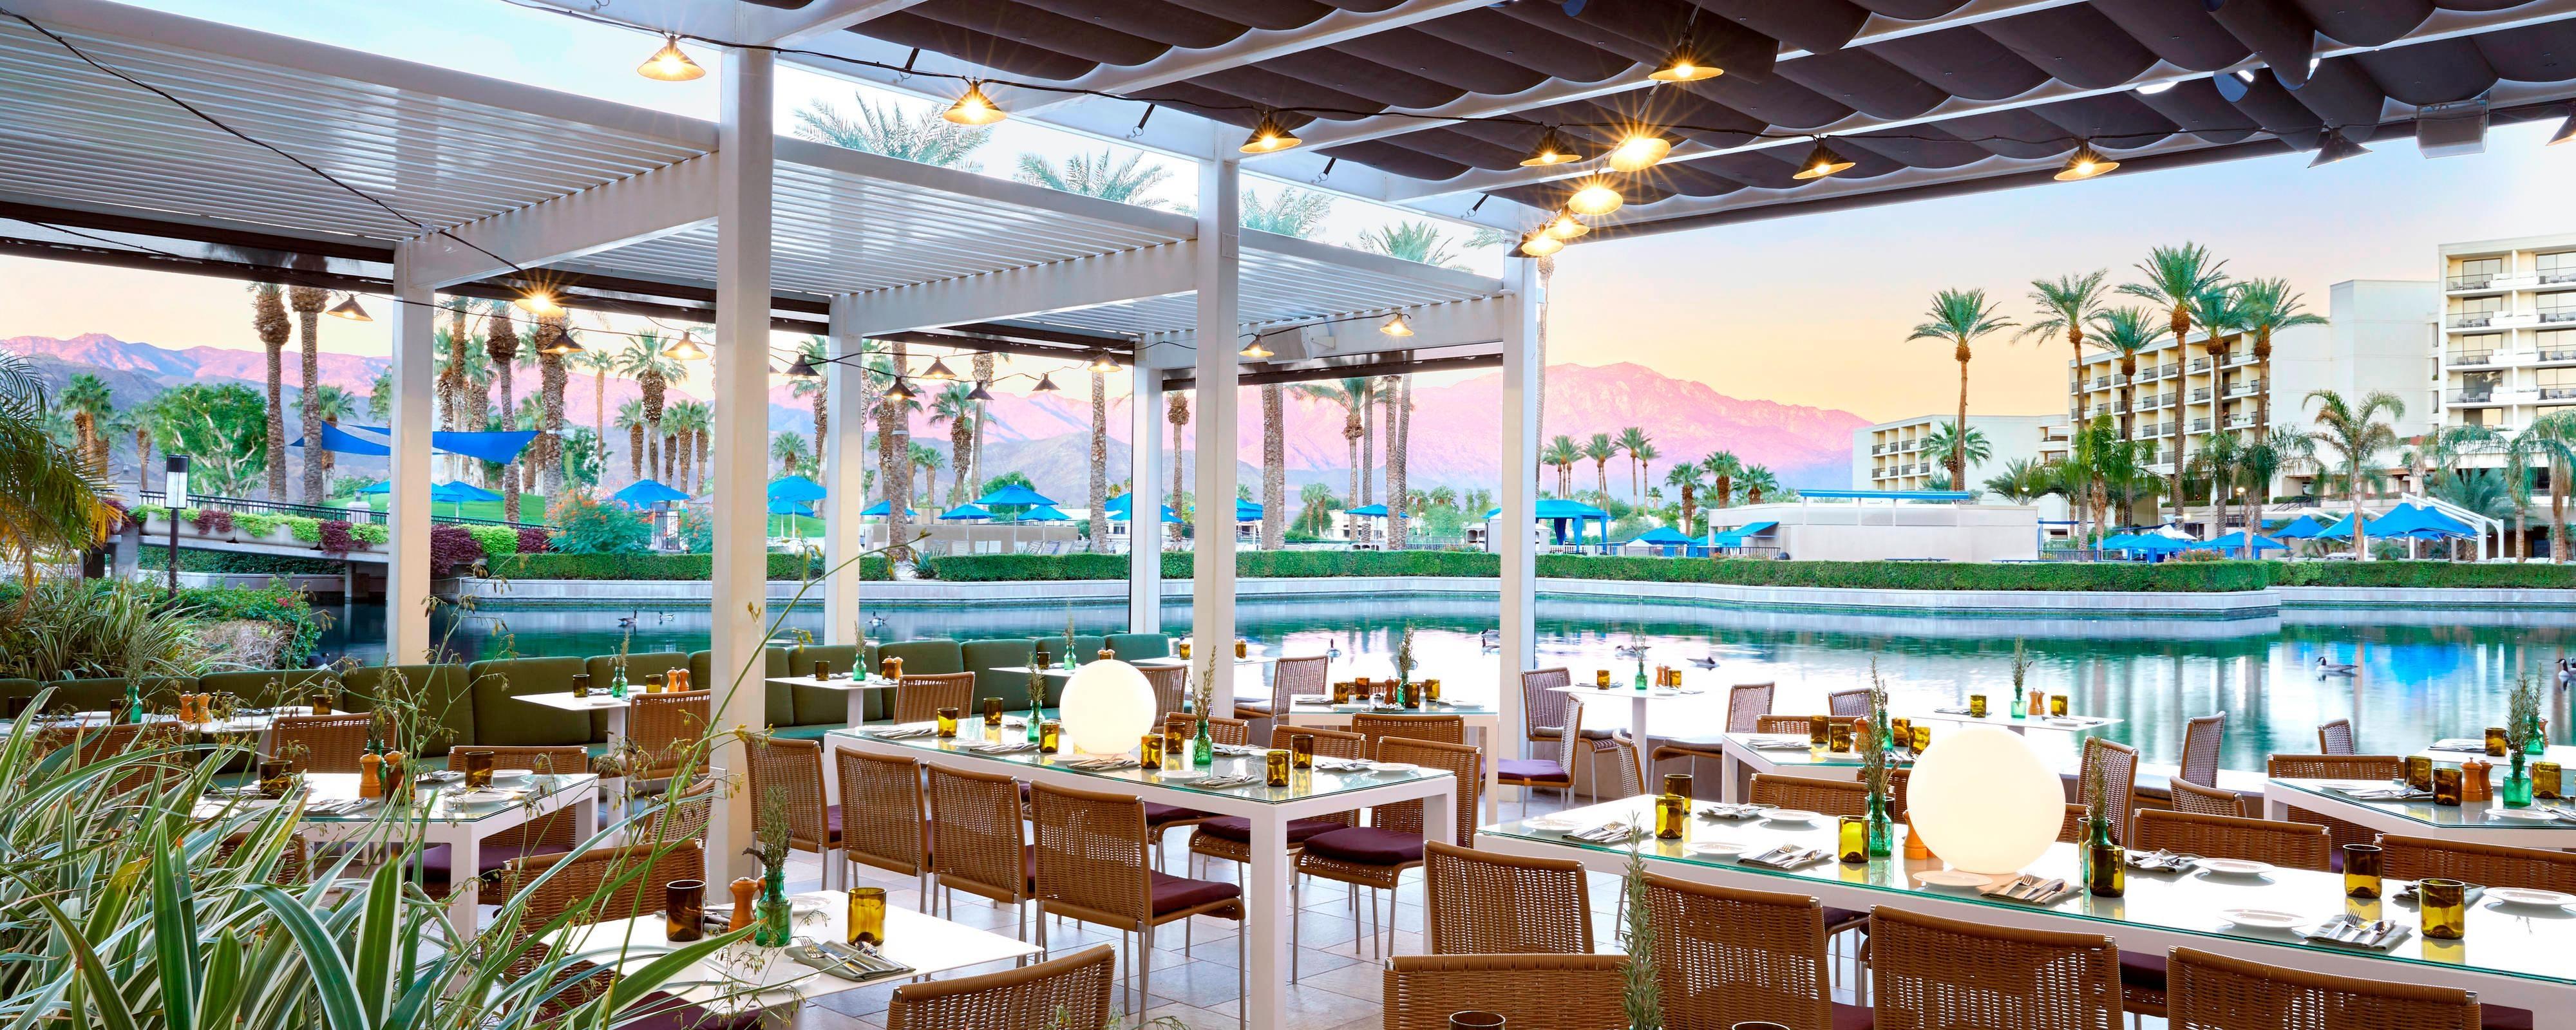 Palm Desert Restaurants Steakhouse Jw Marriott Desert Springs Resort Spa